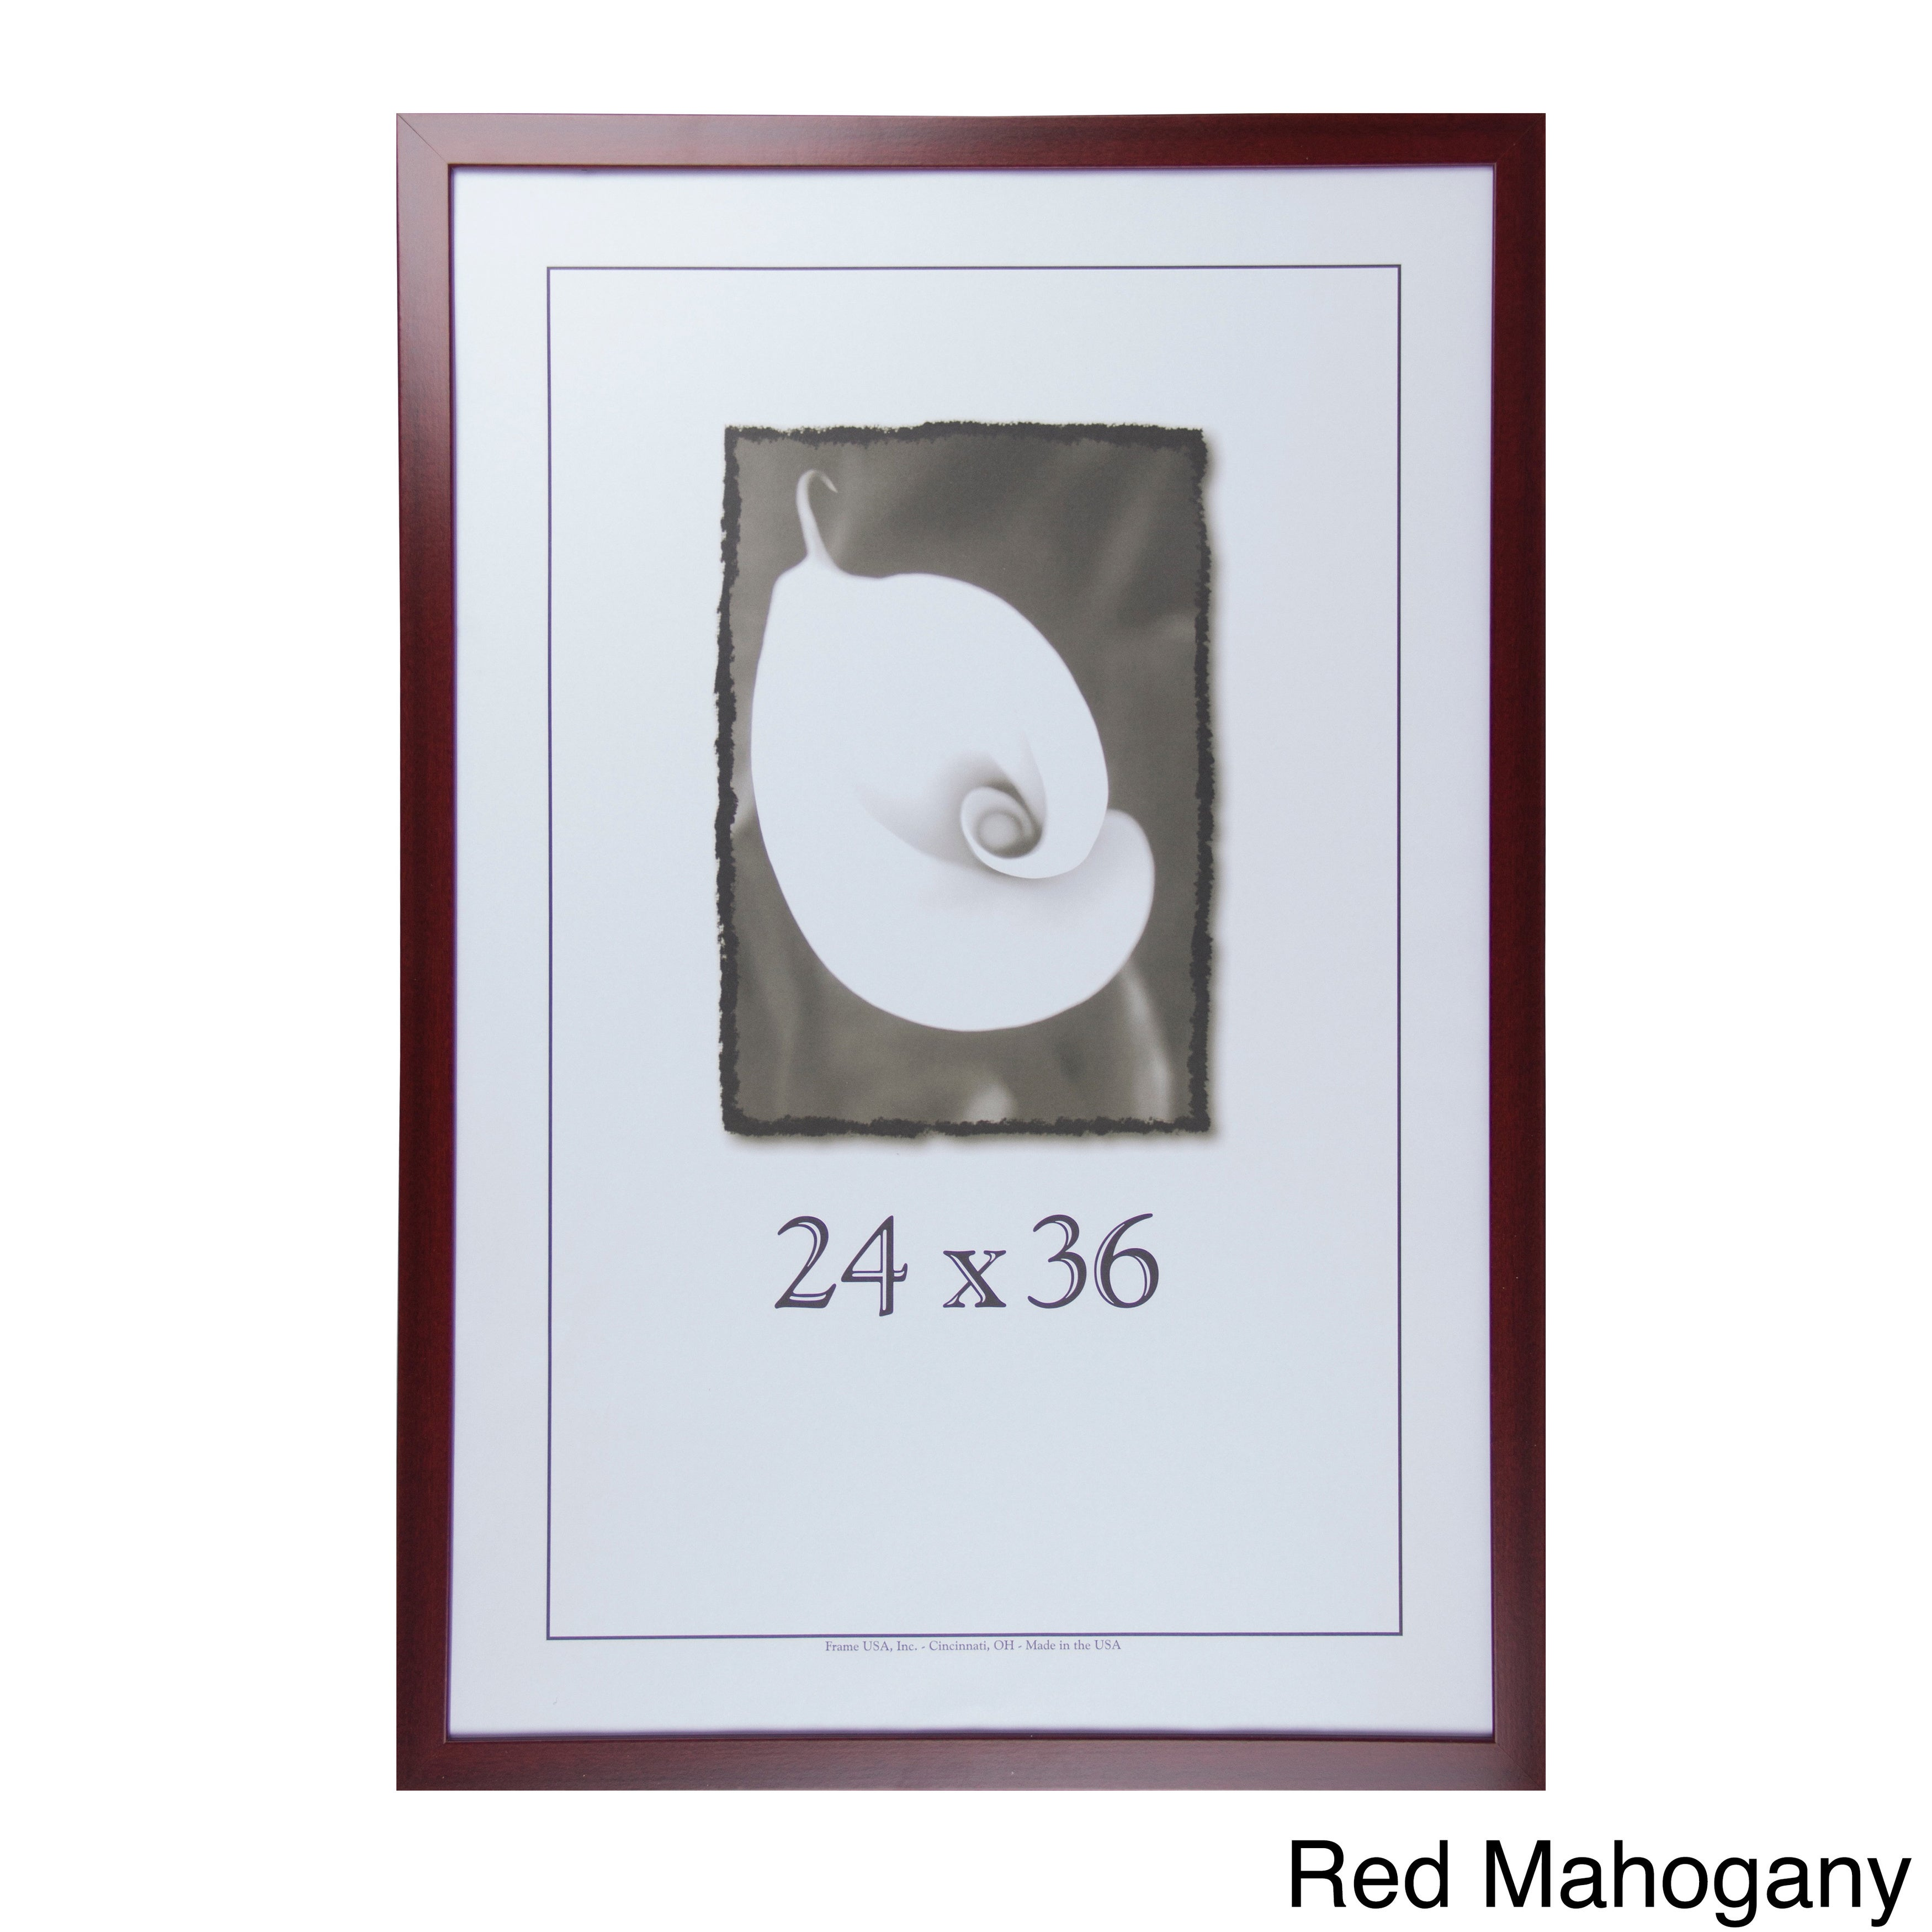 Orate Frames 24 X 36in Red Mahogany Poster Frame | eBay